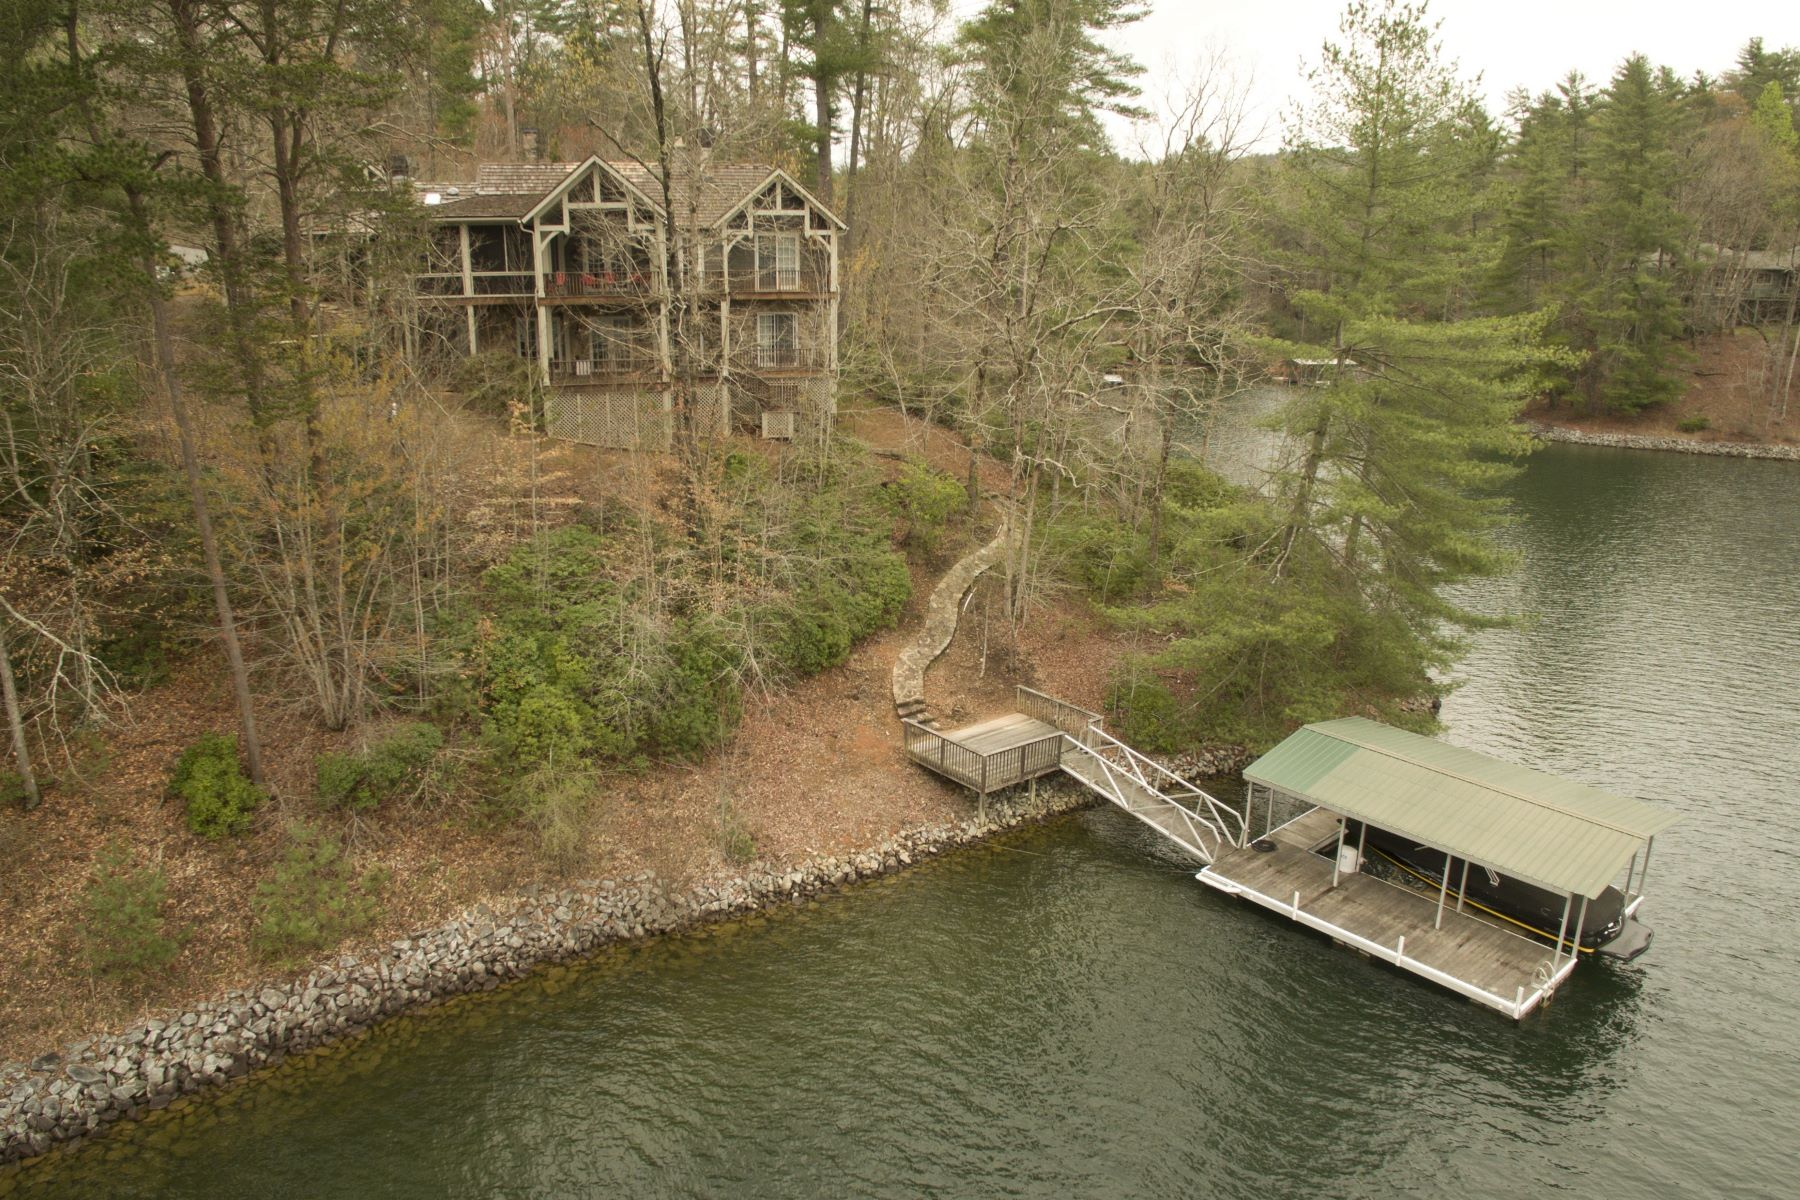 Single Family Home for Sale at European Flavor Lake Home 121 Mist Flower Lane The Cliffs At Keowee Vineyards, Sunset, South Carolina, 29685 United States